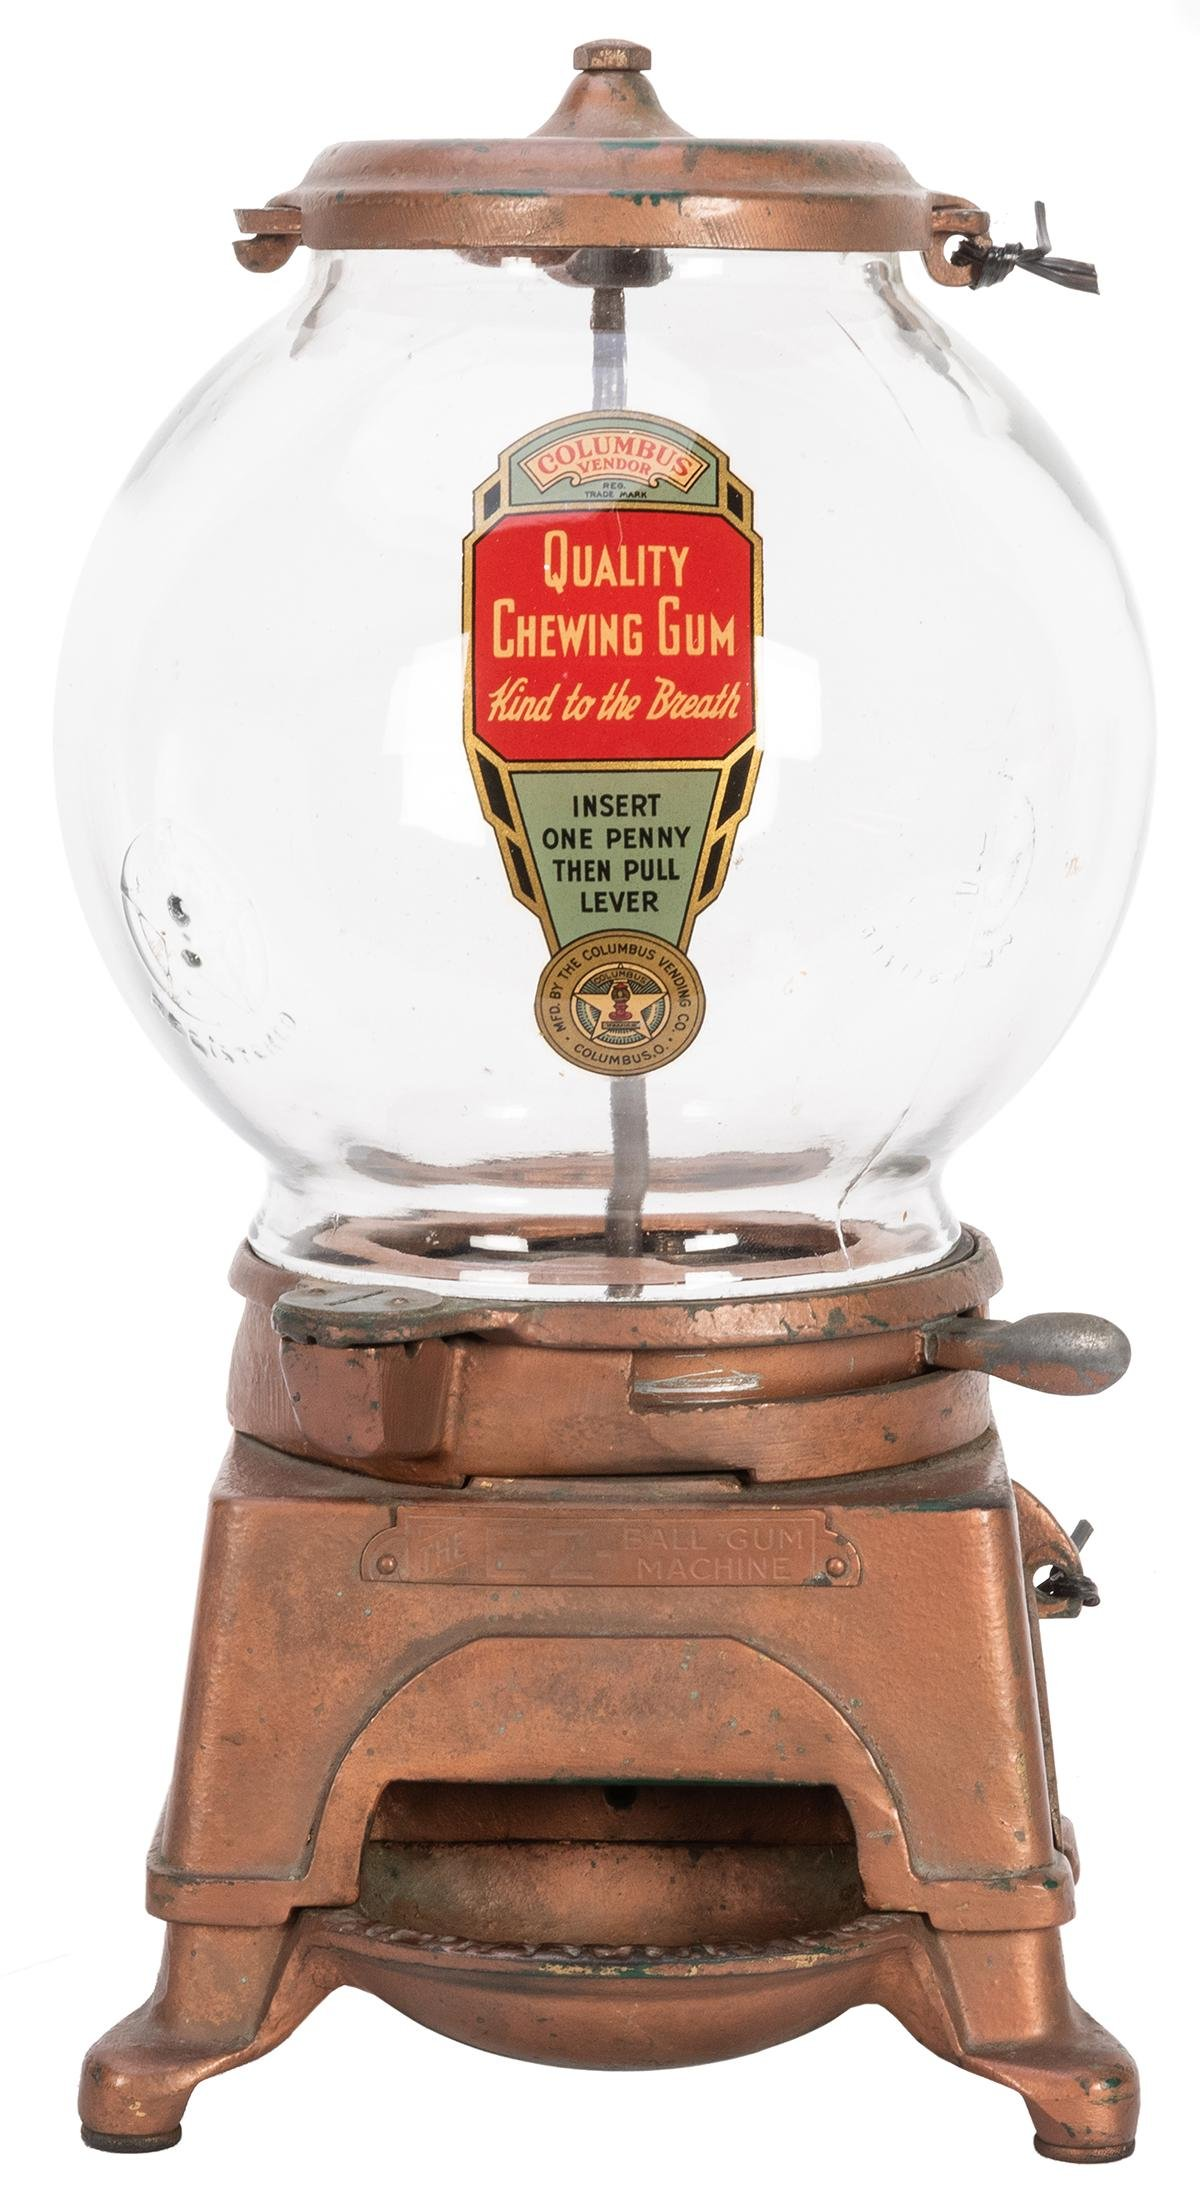 Ad-Lee Novelty Co. 5 Cent E-Z Gumball Vendor. Chicago,